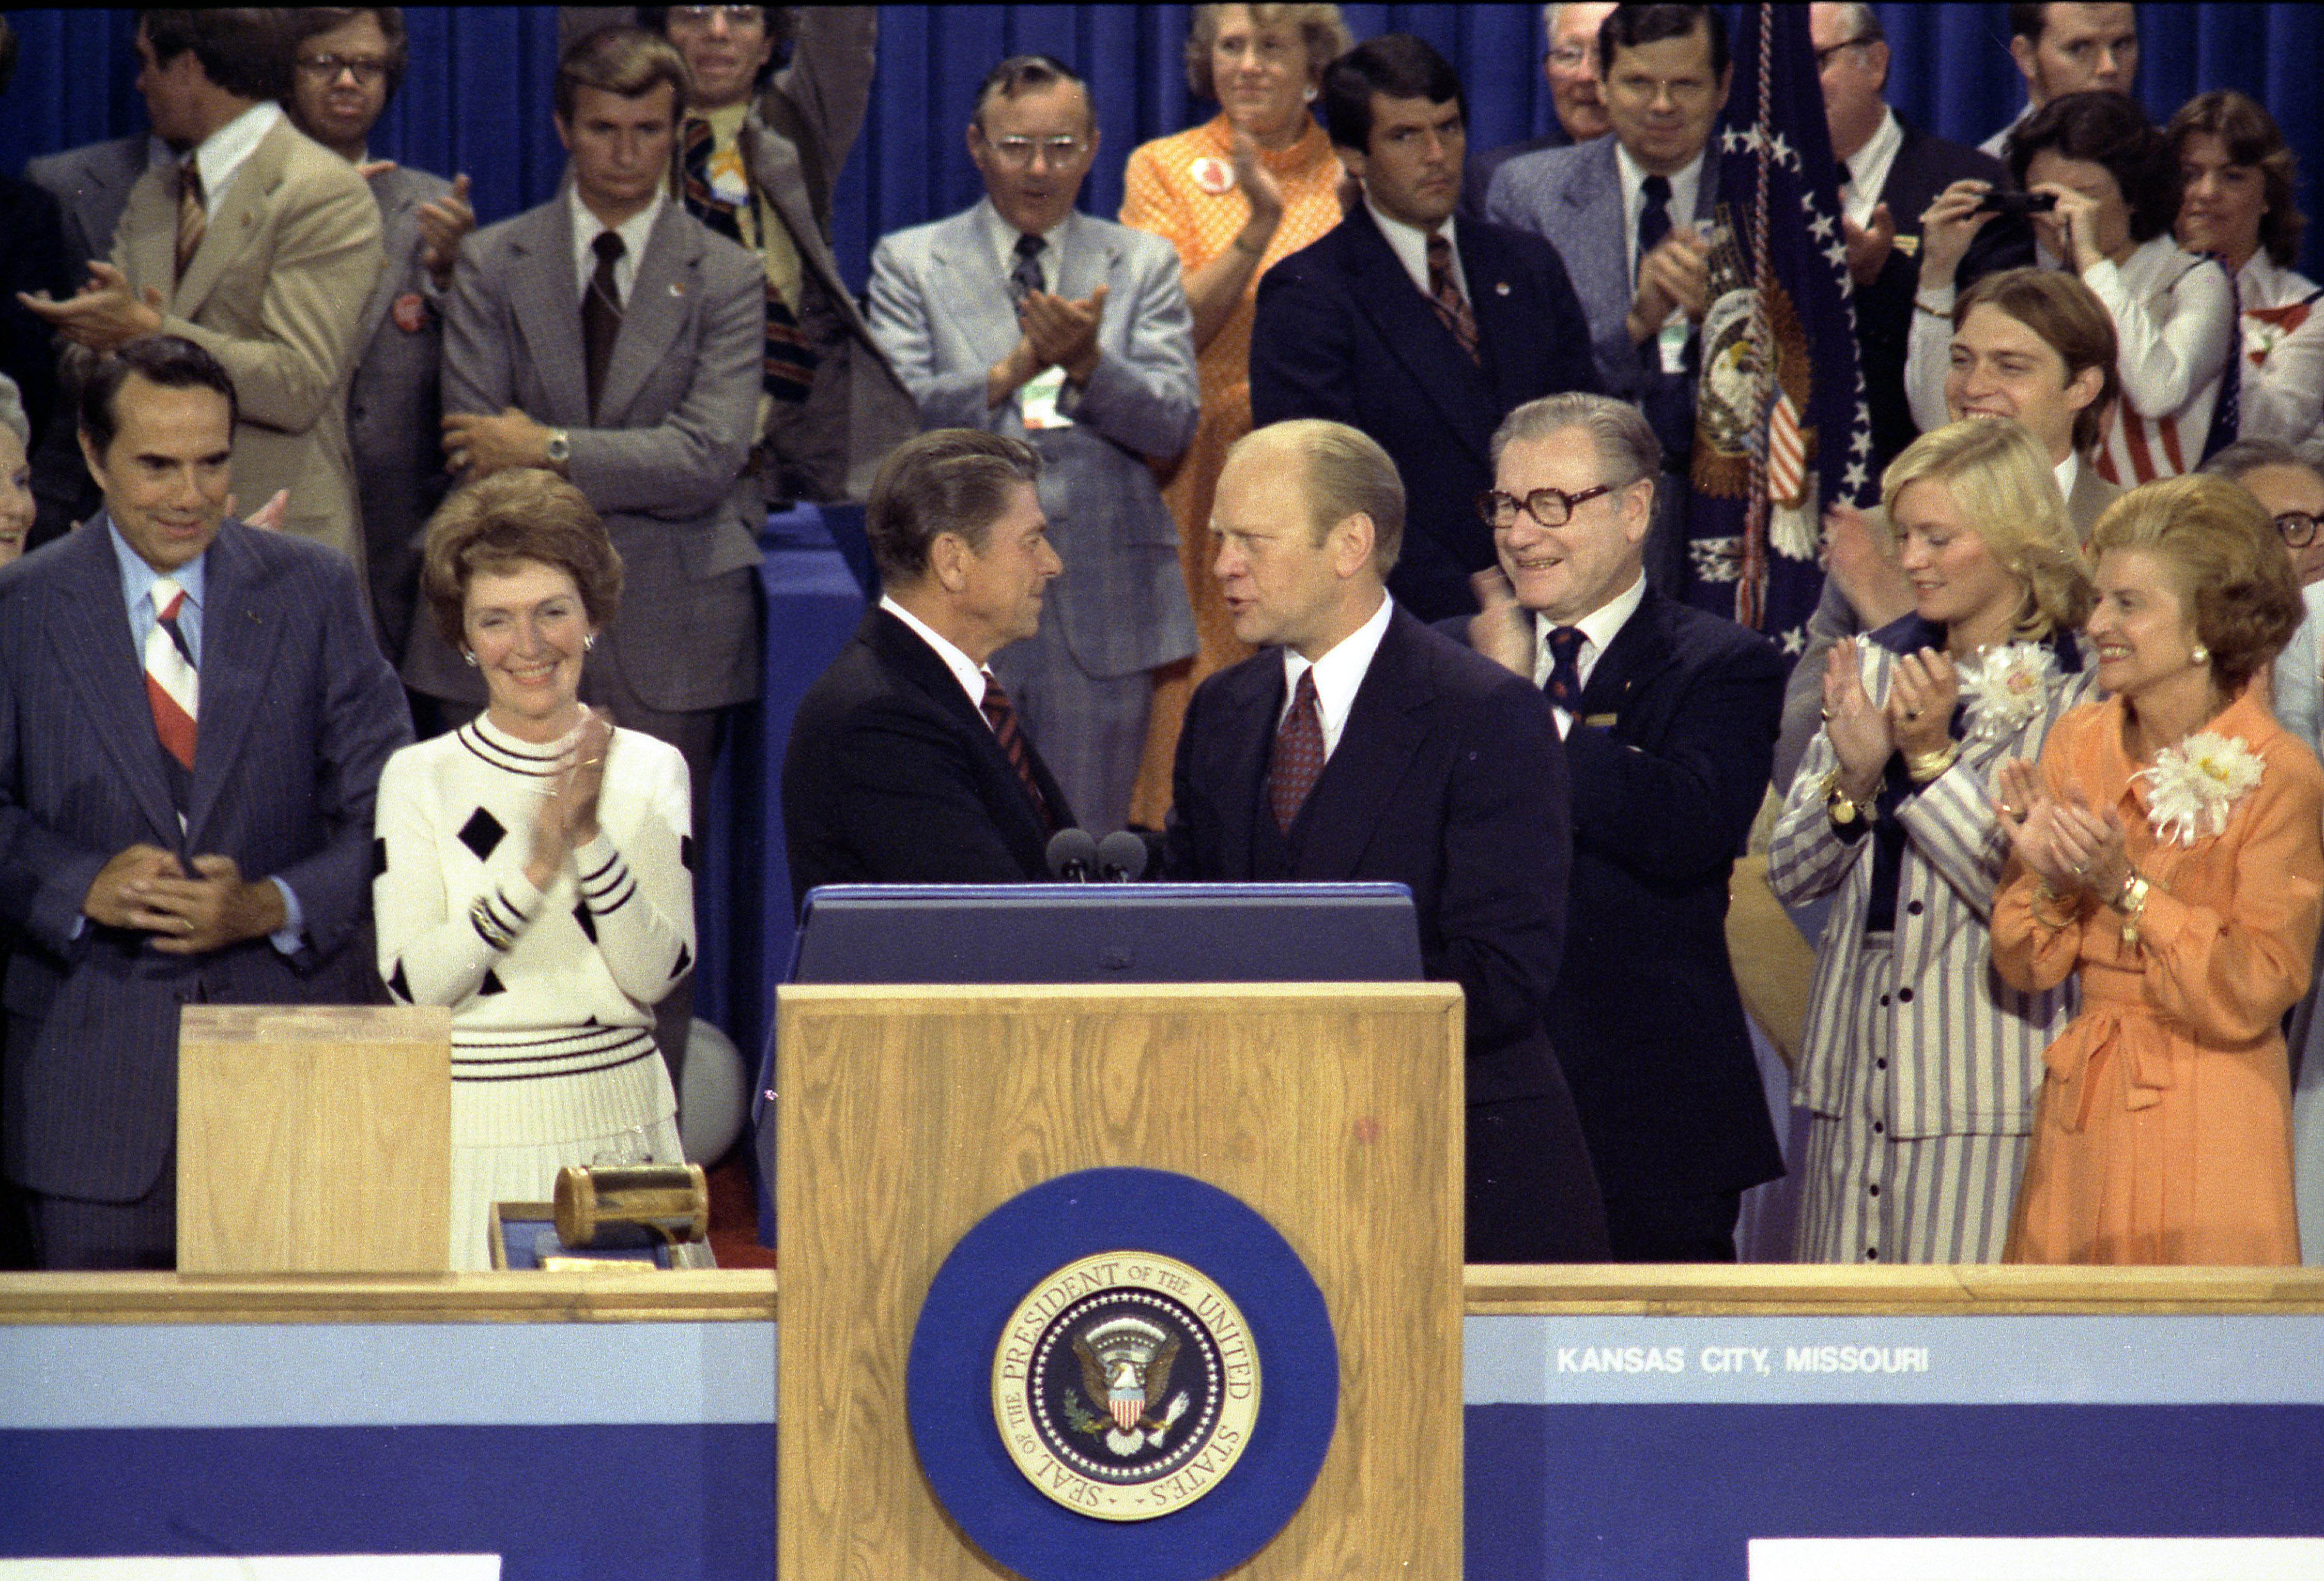 On the podium with Gerald Ford after narrowly losing the nomination at the 1976 Republican National Convention. President Gerald Ford, as the Republican nominee, shakes hands with nomination foe Ronald Reagan on the closing night of the Convention at Kemper Arena in Kansas City, Missouri, August 19, 1976. Vice-Presidential Candidate Bob Dole is on the far left, then Nancy Reagan, Governor Ronald Reagan is at the center shaking hands with President Gerald Ford, Vice-President Nelson Rockefeller is just to the right of Ford, followed by Susan Ford and First Lady Betty Ford.